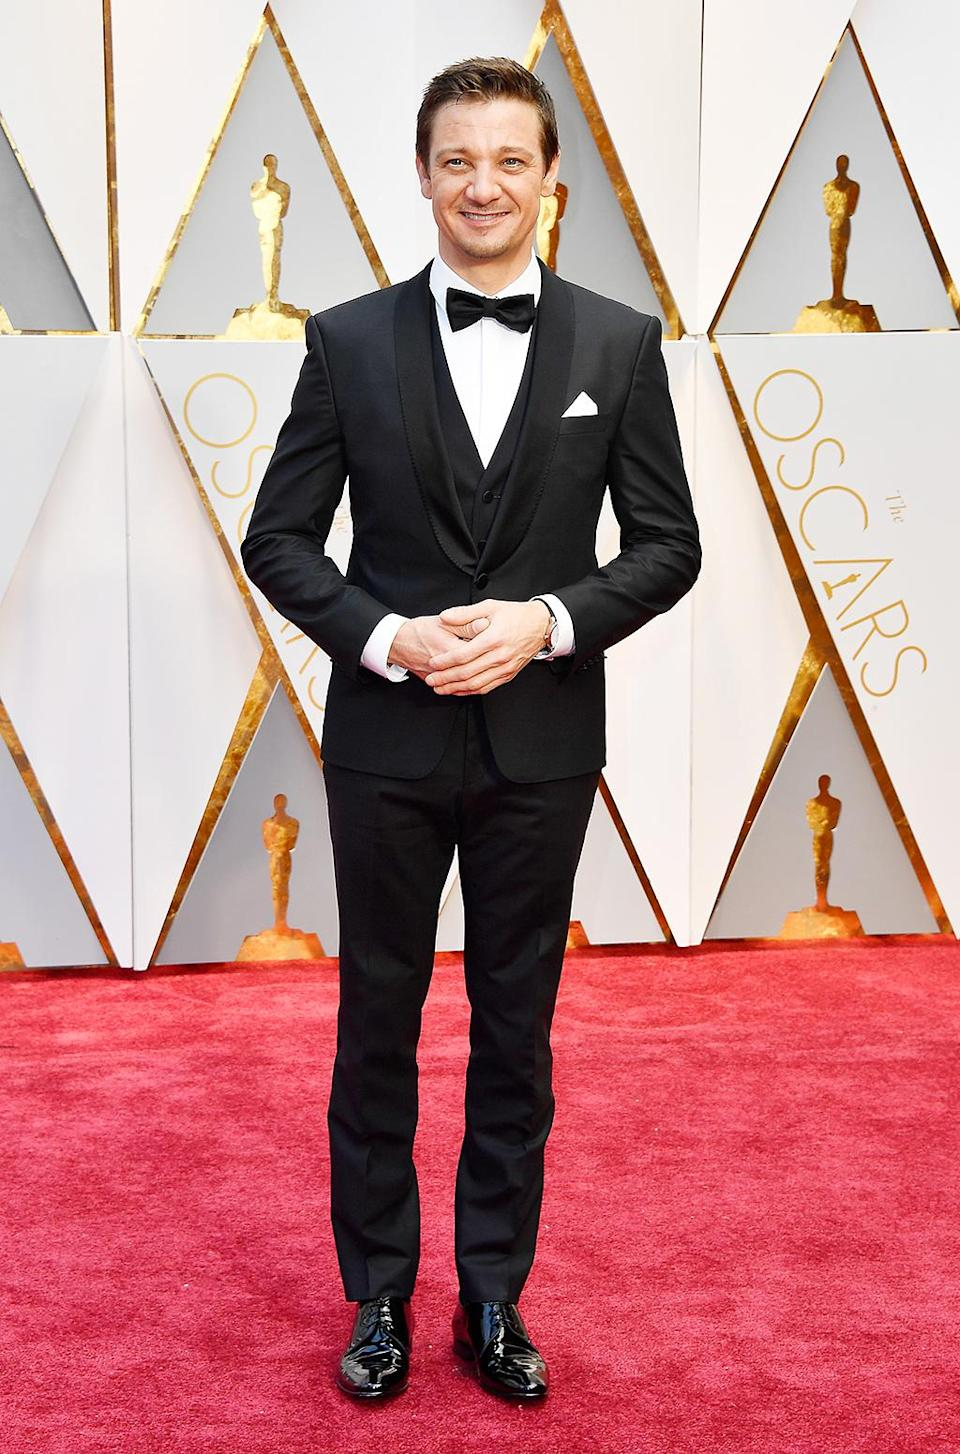 <p>Jeremy Renner attends the 89th Annual Academy Awards at Hollywood & Highland Center on February 26, 2017 in Hollywood, California. (Photo by Frazer Harrison/Getty Images) </p>